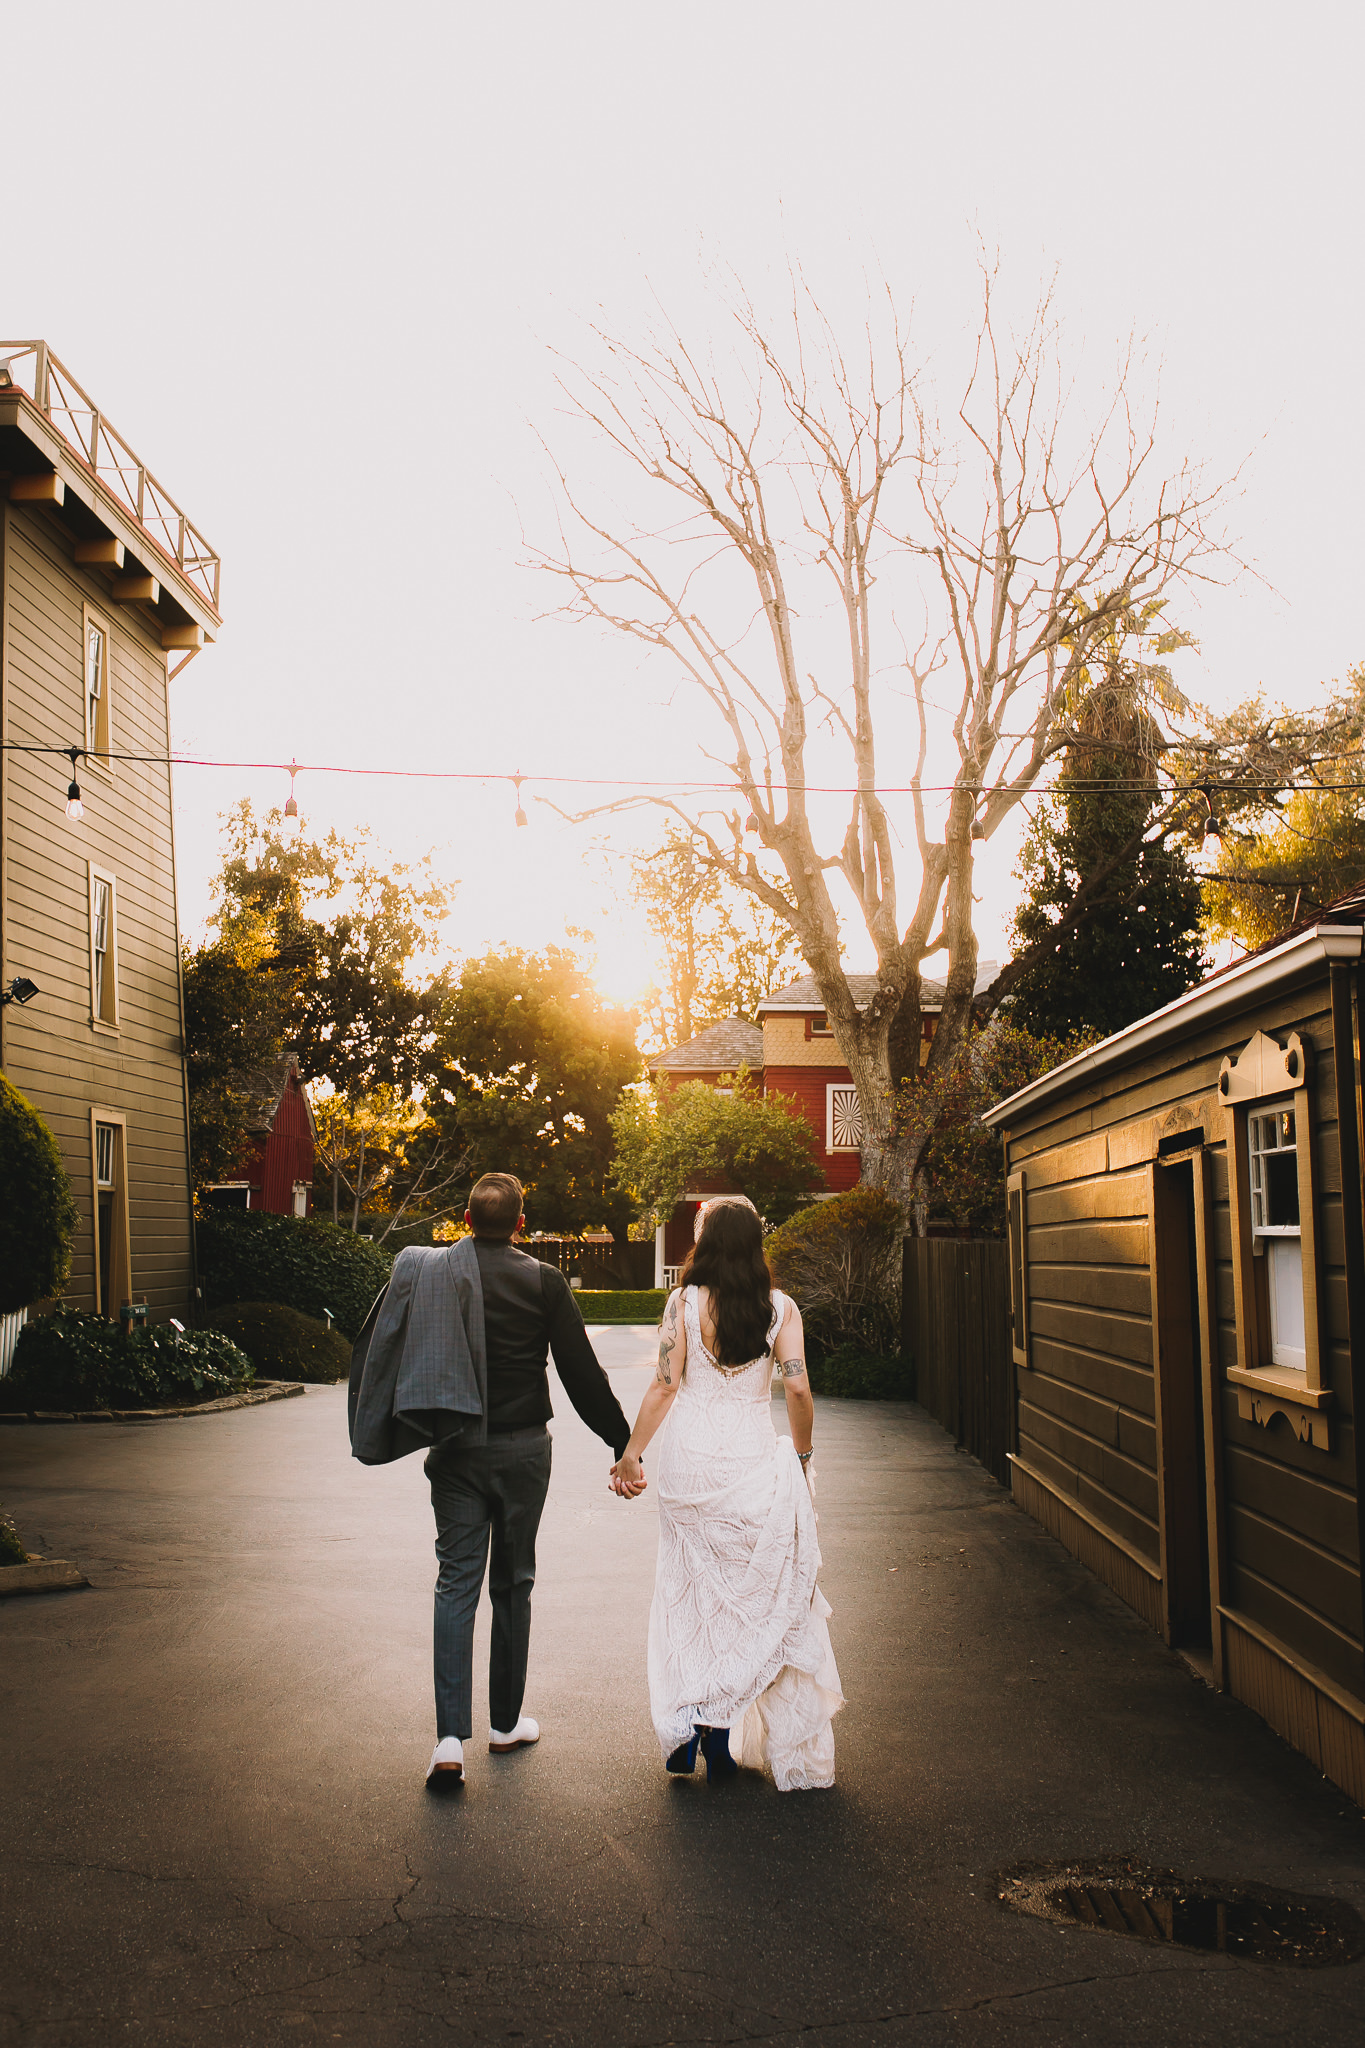 Archer Inspired Photography Sara and Aaron Winchester Mystery House NorCal San Jose California Wedding Photographer-420.jpg